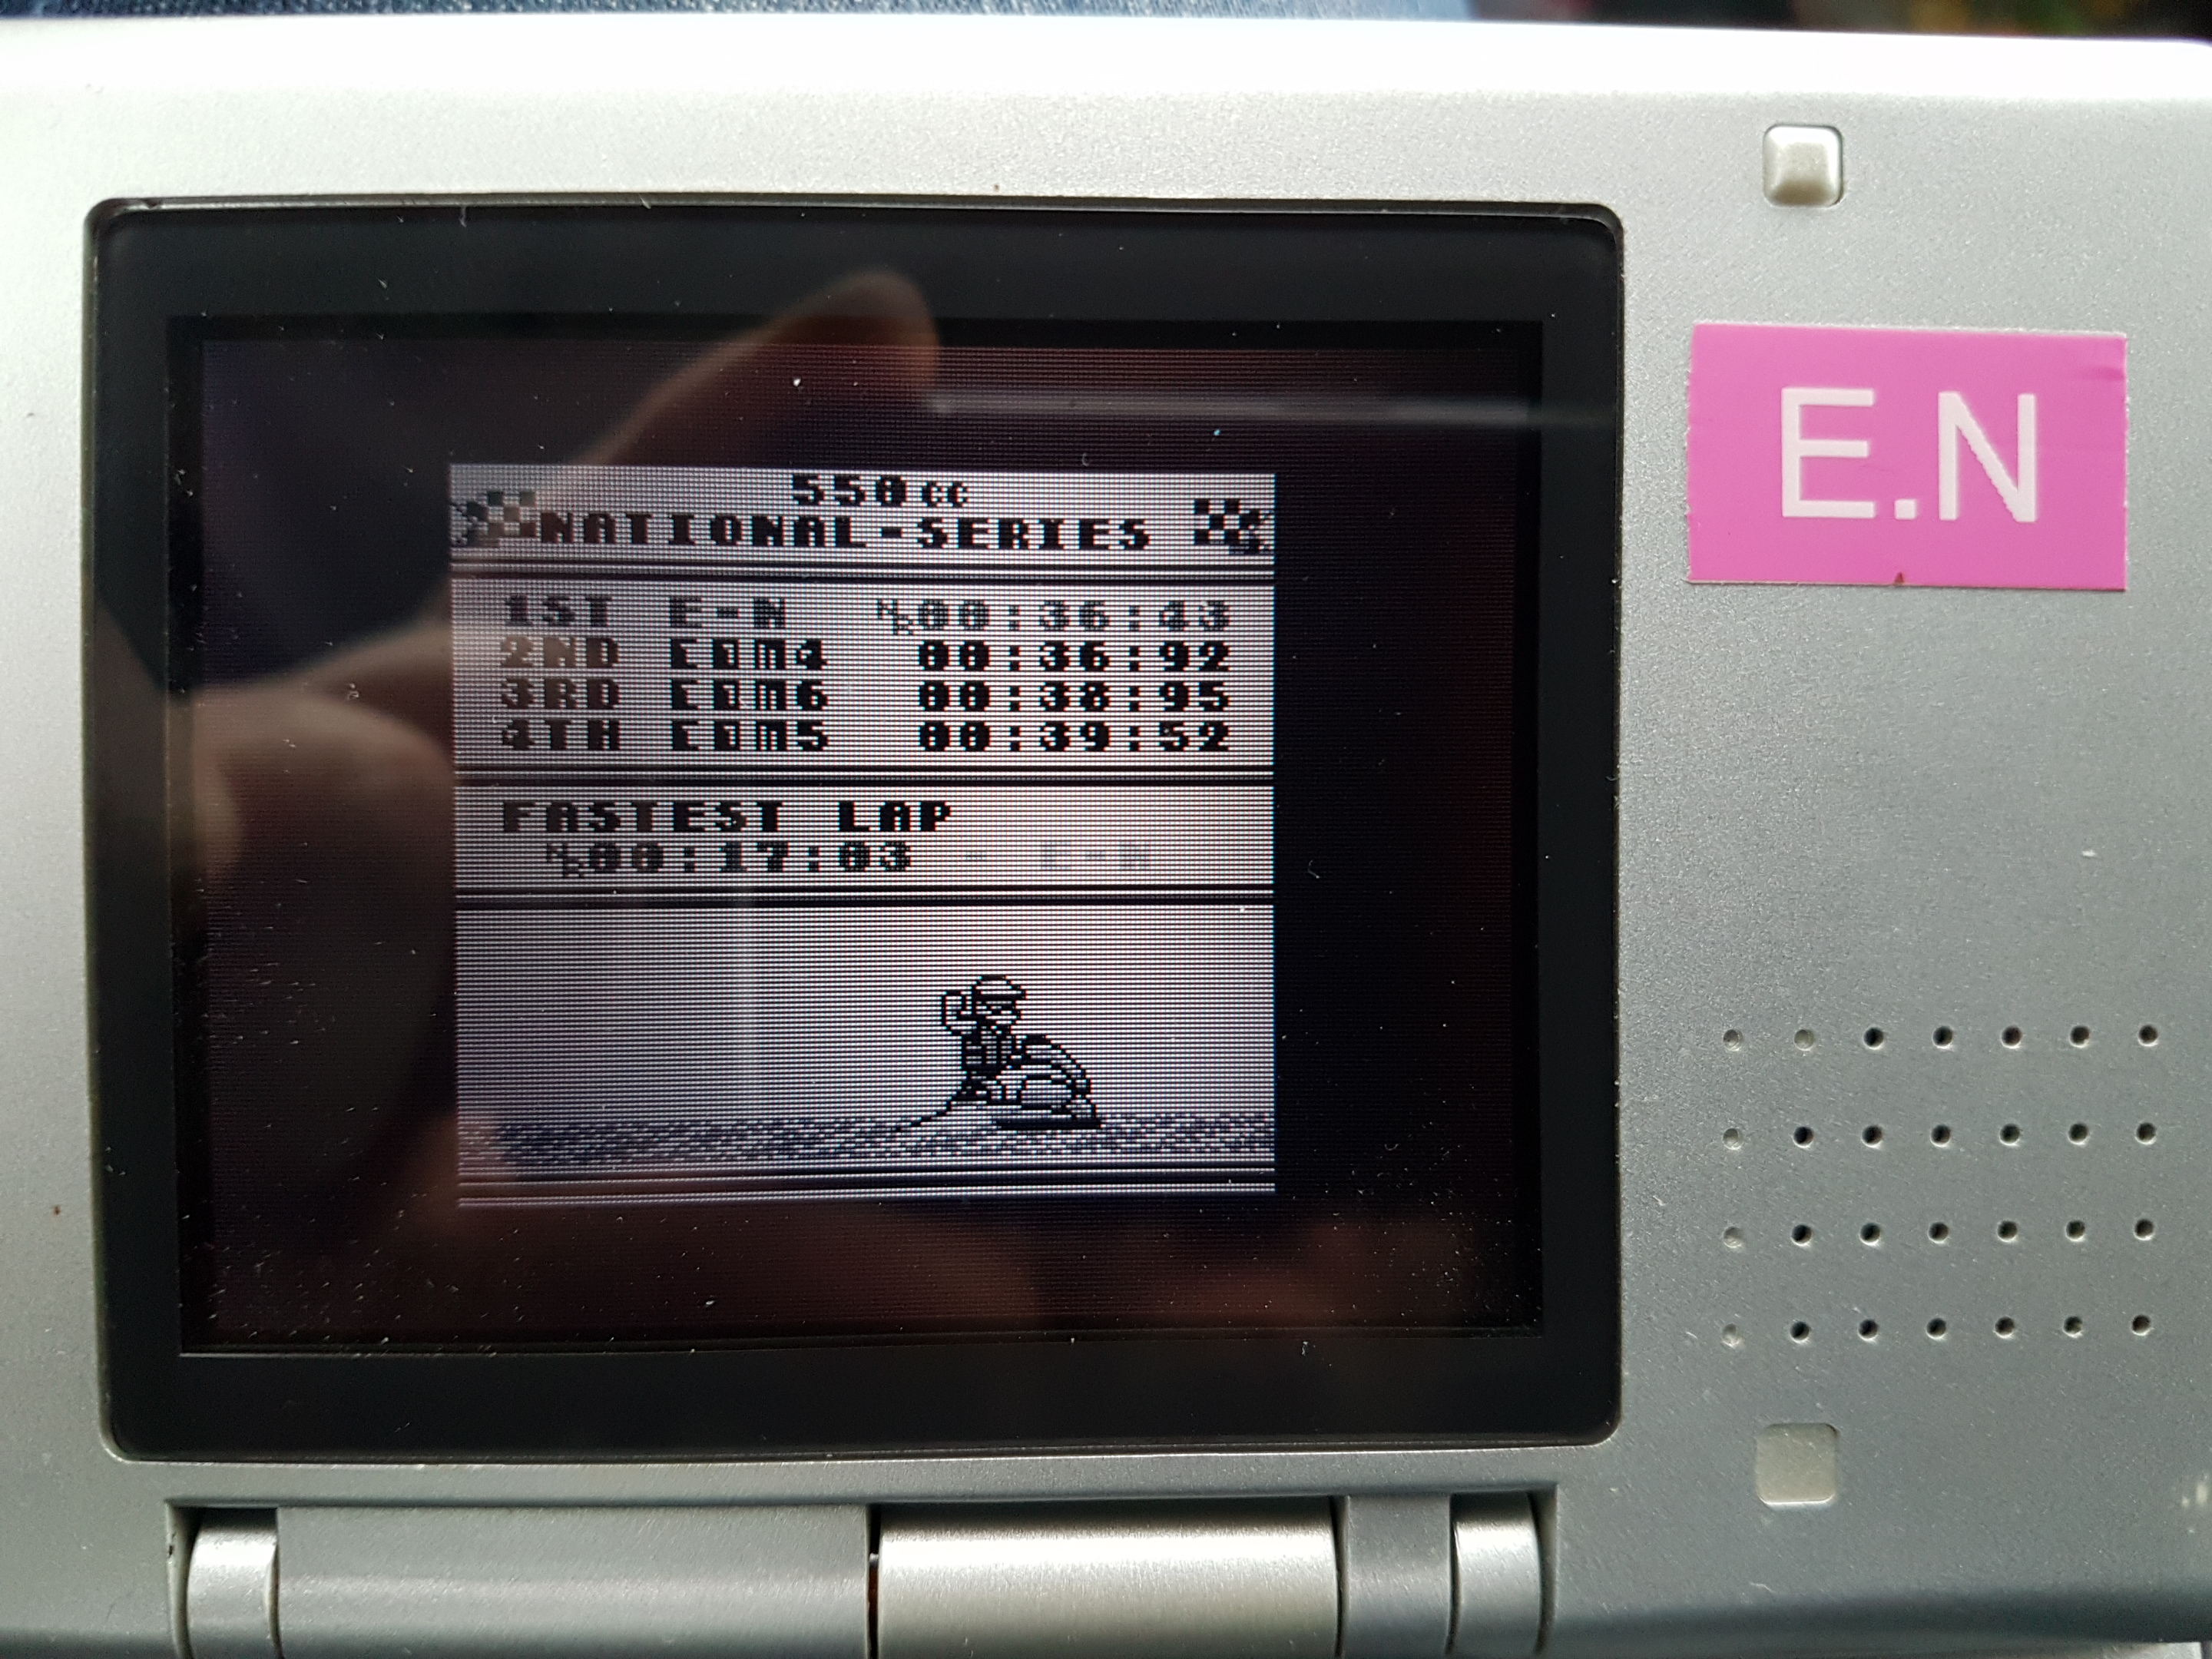 EddieNiceguy: Wave Race: Circuit 1: Bahamas [550cc][Total Time] (Game Boy Emulated) 0:00:36.43 points on 2019-01-07 06:22:25